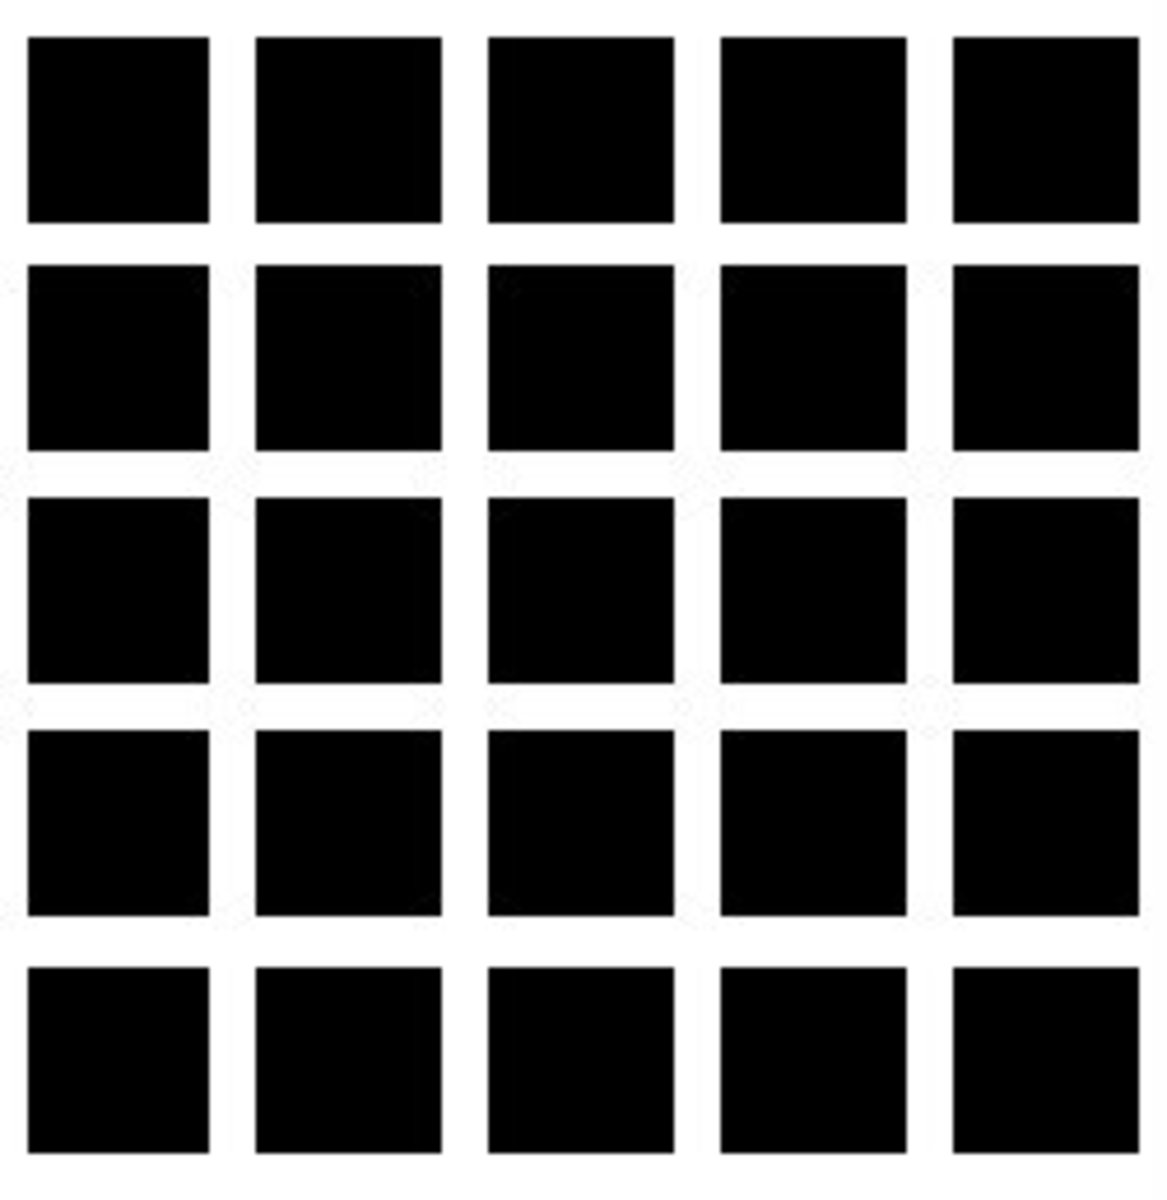 Nope nope! No gray spots at all at the corners of the squares!